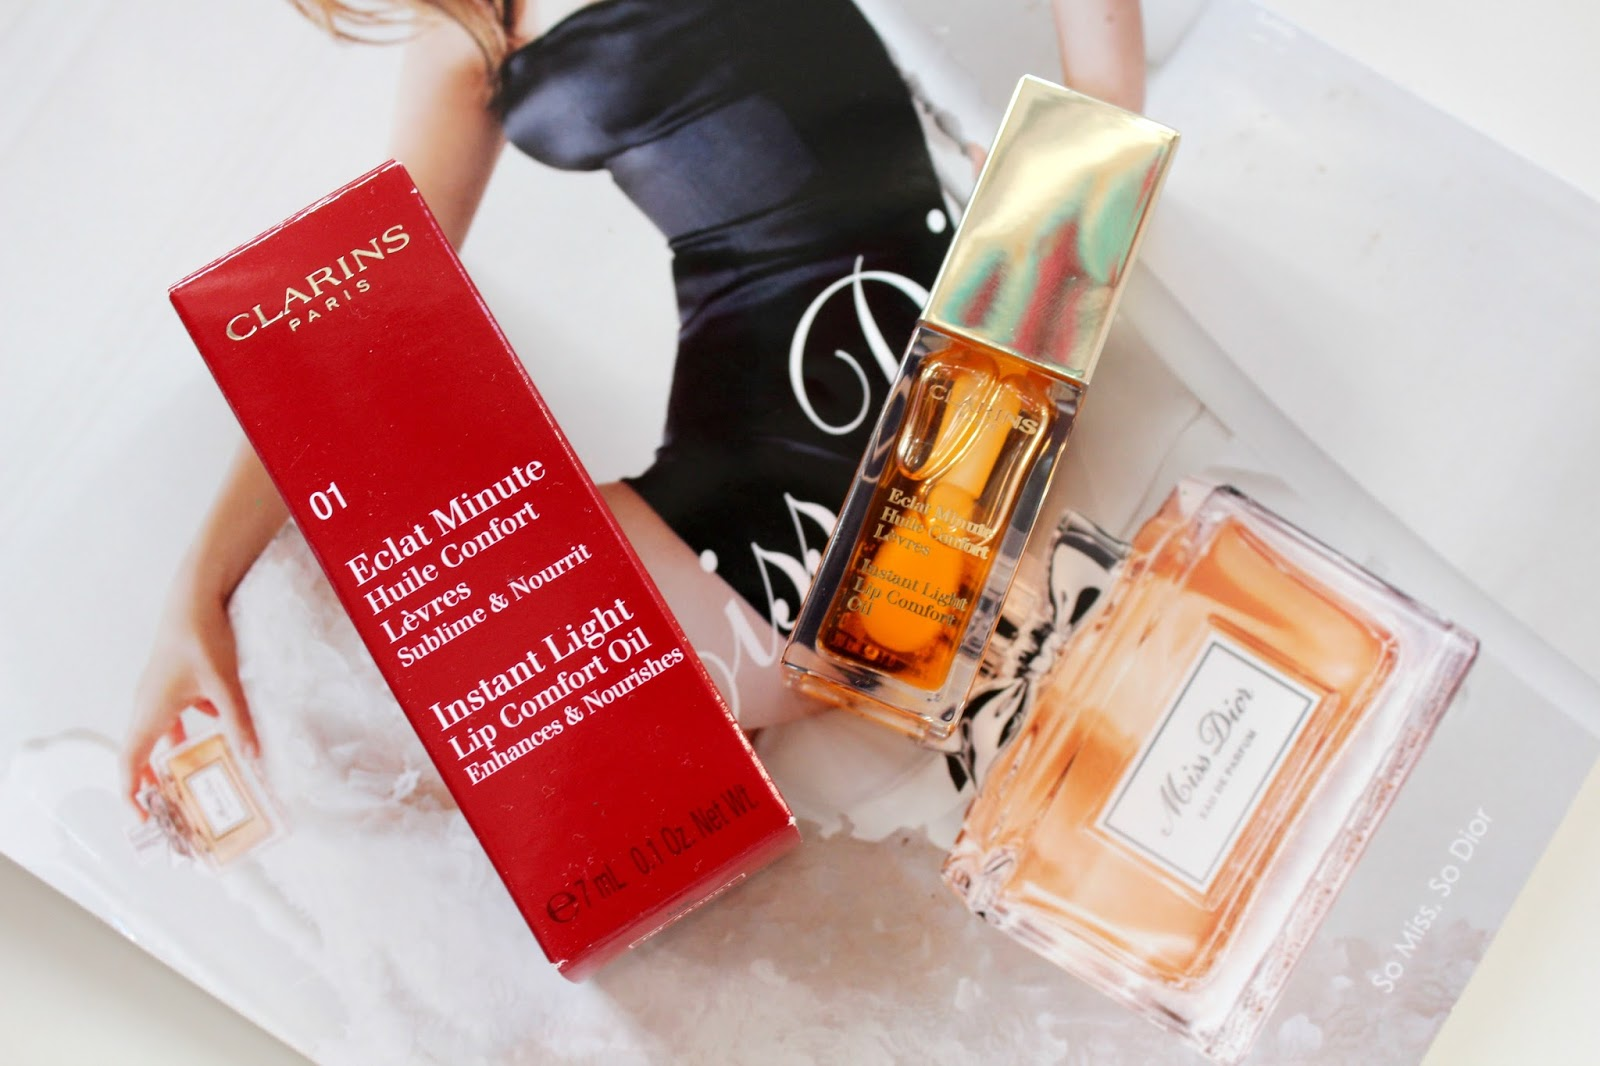 a5c9444921f28 Little Miss Lifestyle UK Beauty and Lifestyle Blog: Review: Clarins ...